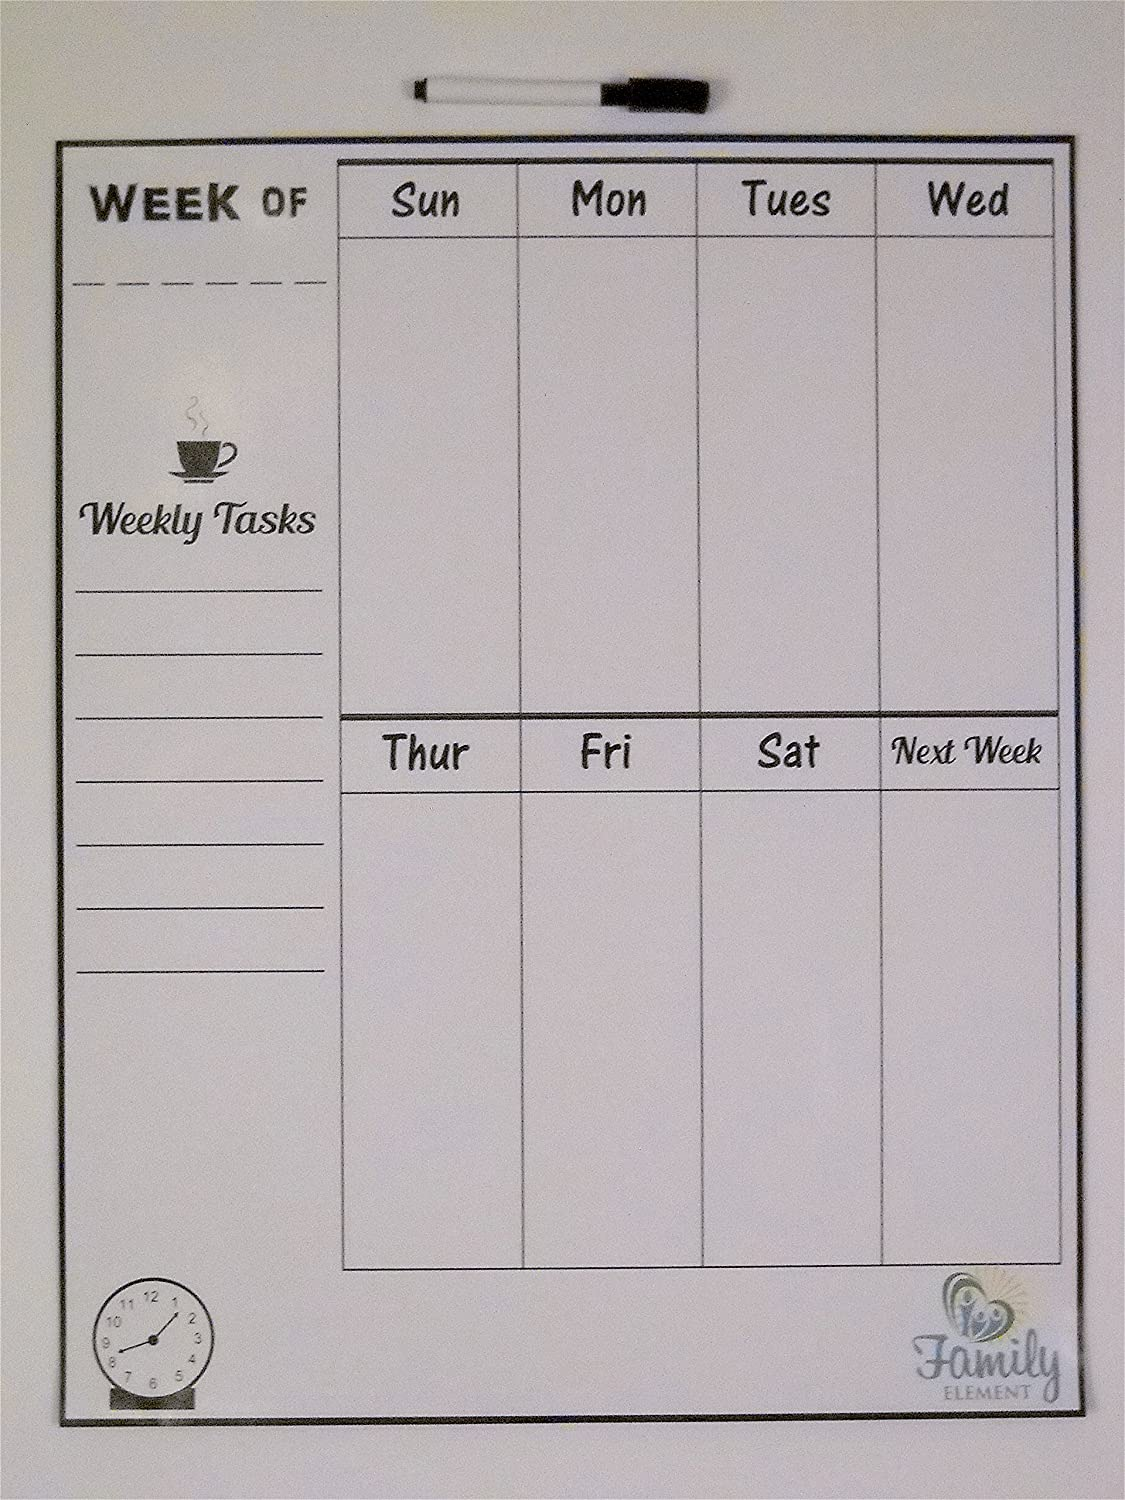 """Family Element's Large Weekly Dry Erase Refrigerator Magnet Calendar – Size 19.5x15.5"""" (Includes one fine point Black Dry Erase Marker)"""